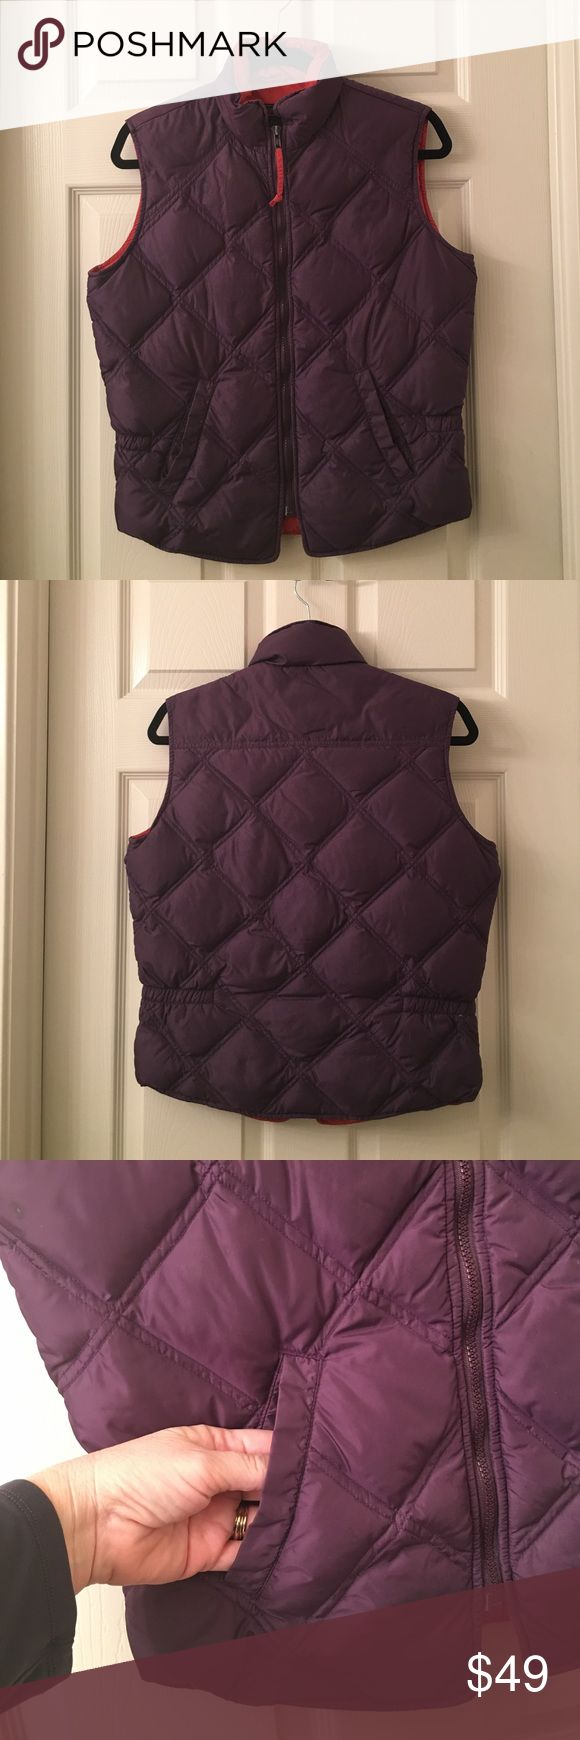 Ladies EDDIE BAUER Goose down puffy zipper vest S High quality EDDIE BAUER goose down vest to wear everyday with jeans❤this puffer vest is plum with orange lining, has a front zip and side pockets❤the sides have some elastic for a flattering fit❤sz S❤Good used condition💕❤️💕Happy poshing my friends💕❤️💕 Eddie Bauer Jackets & Coats Vests